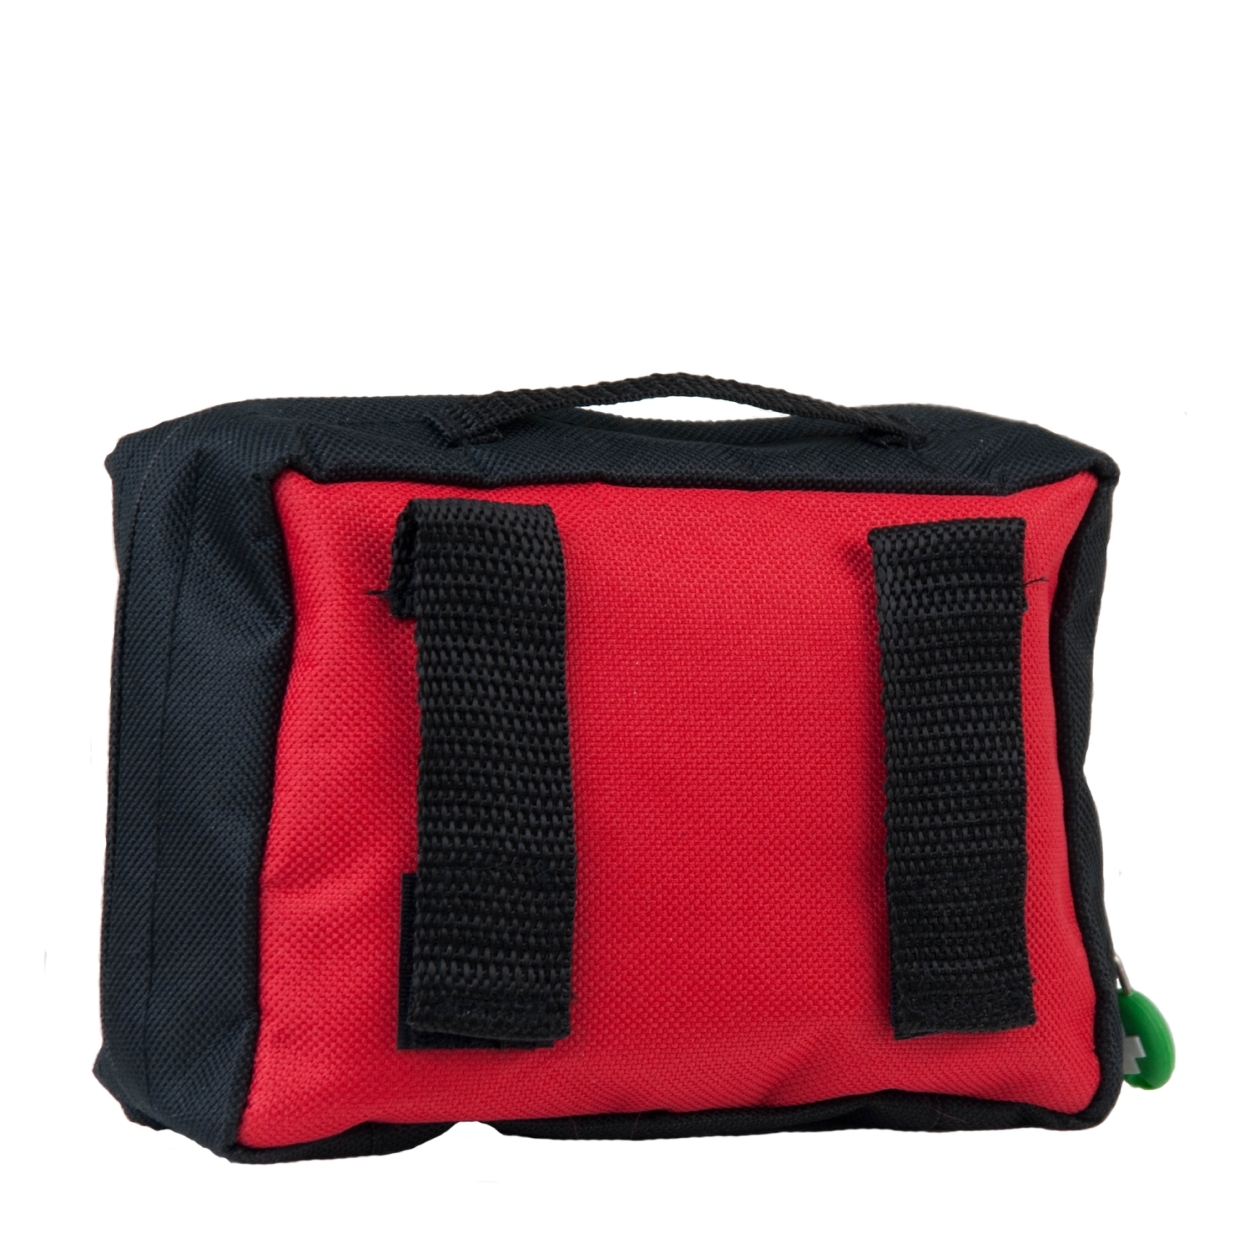 Pursuit Extreme eerste hulp tasje - Medium